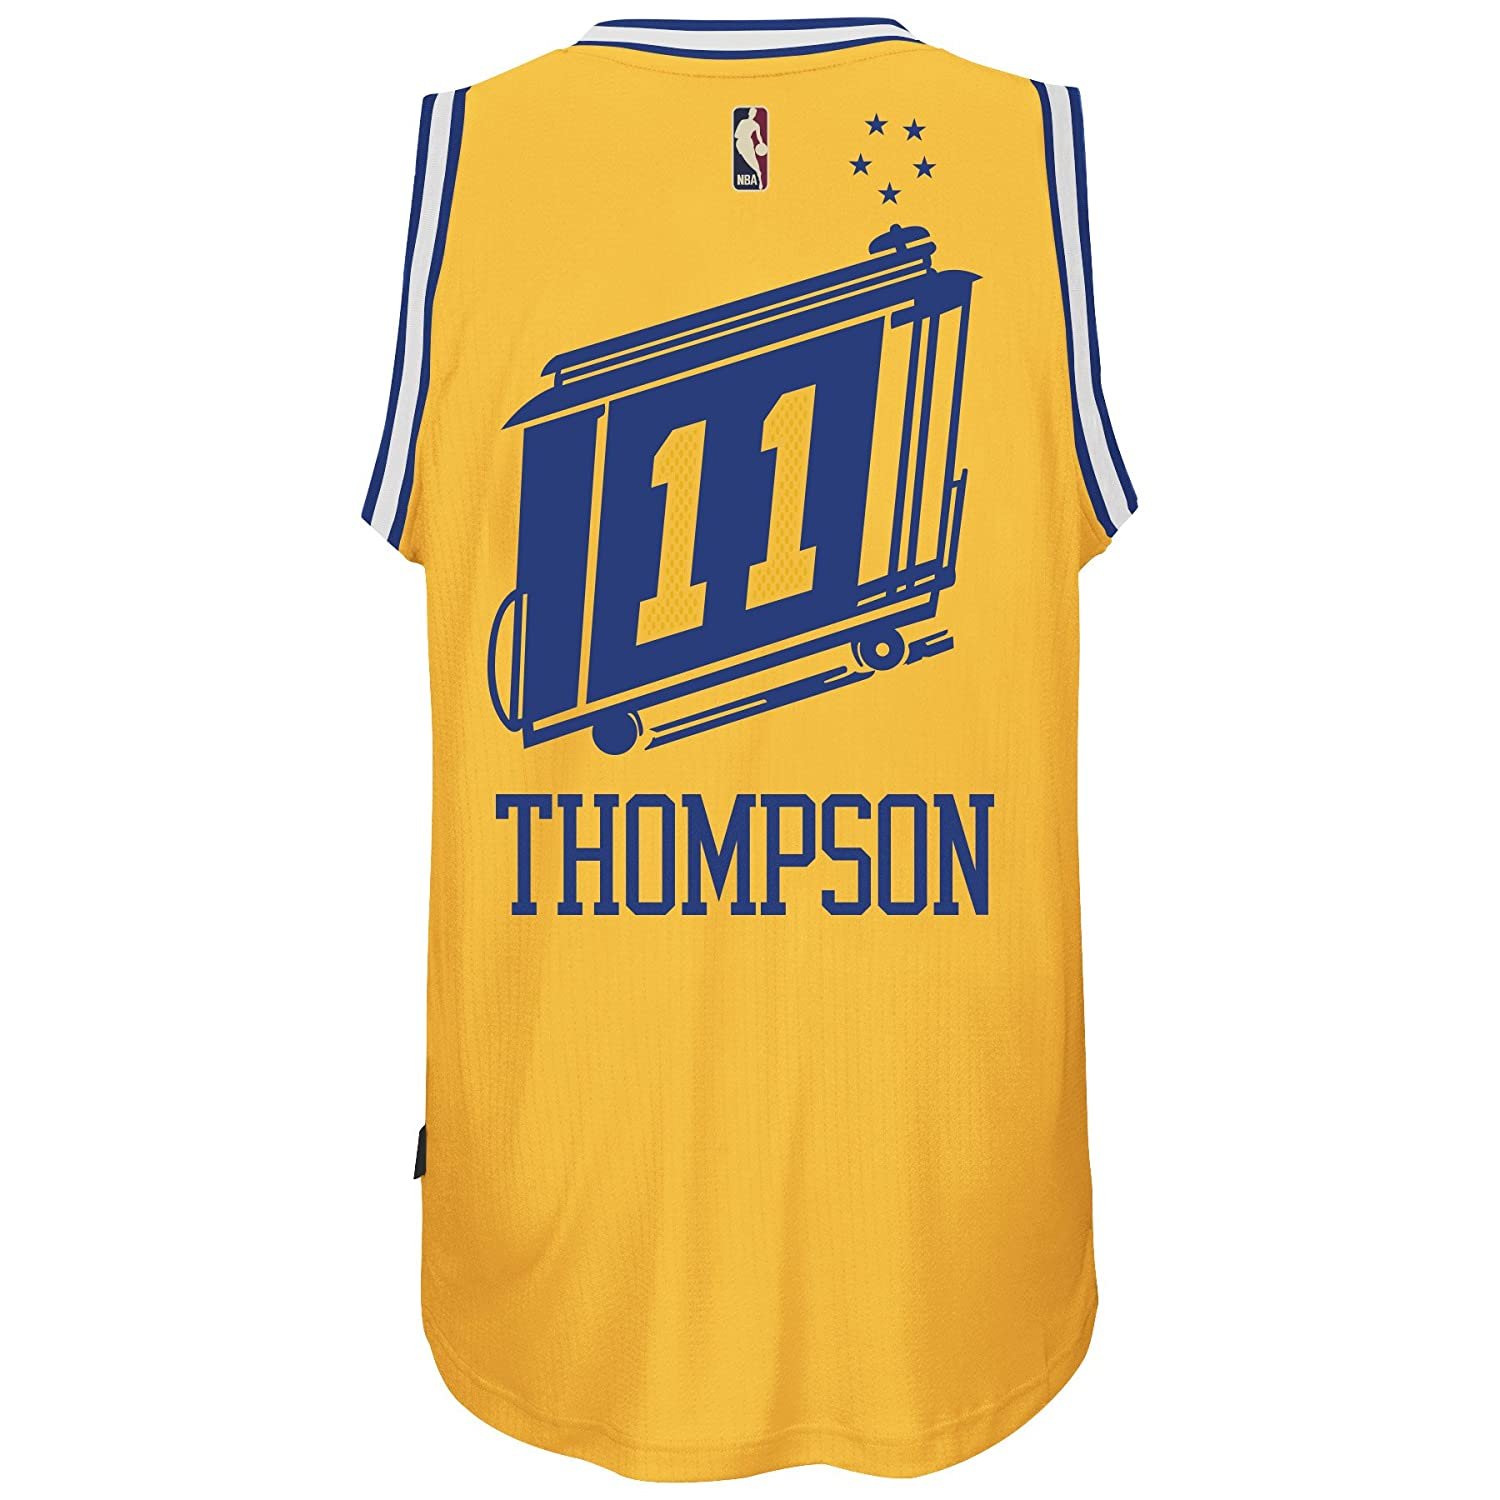 8ddb318ad Amazon.com   adidas Klay Thompson Golden State Warriors Hardwood Classics  Swingman Jersey   Sports   Outdoors